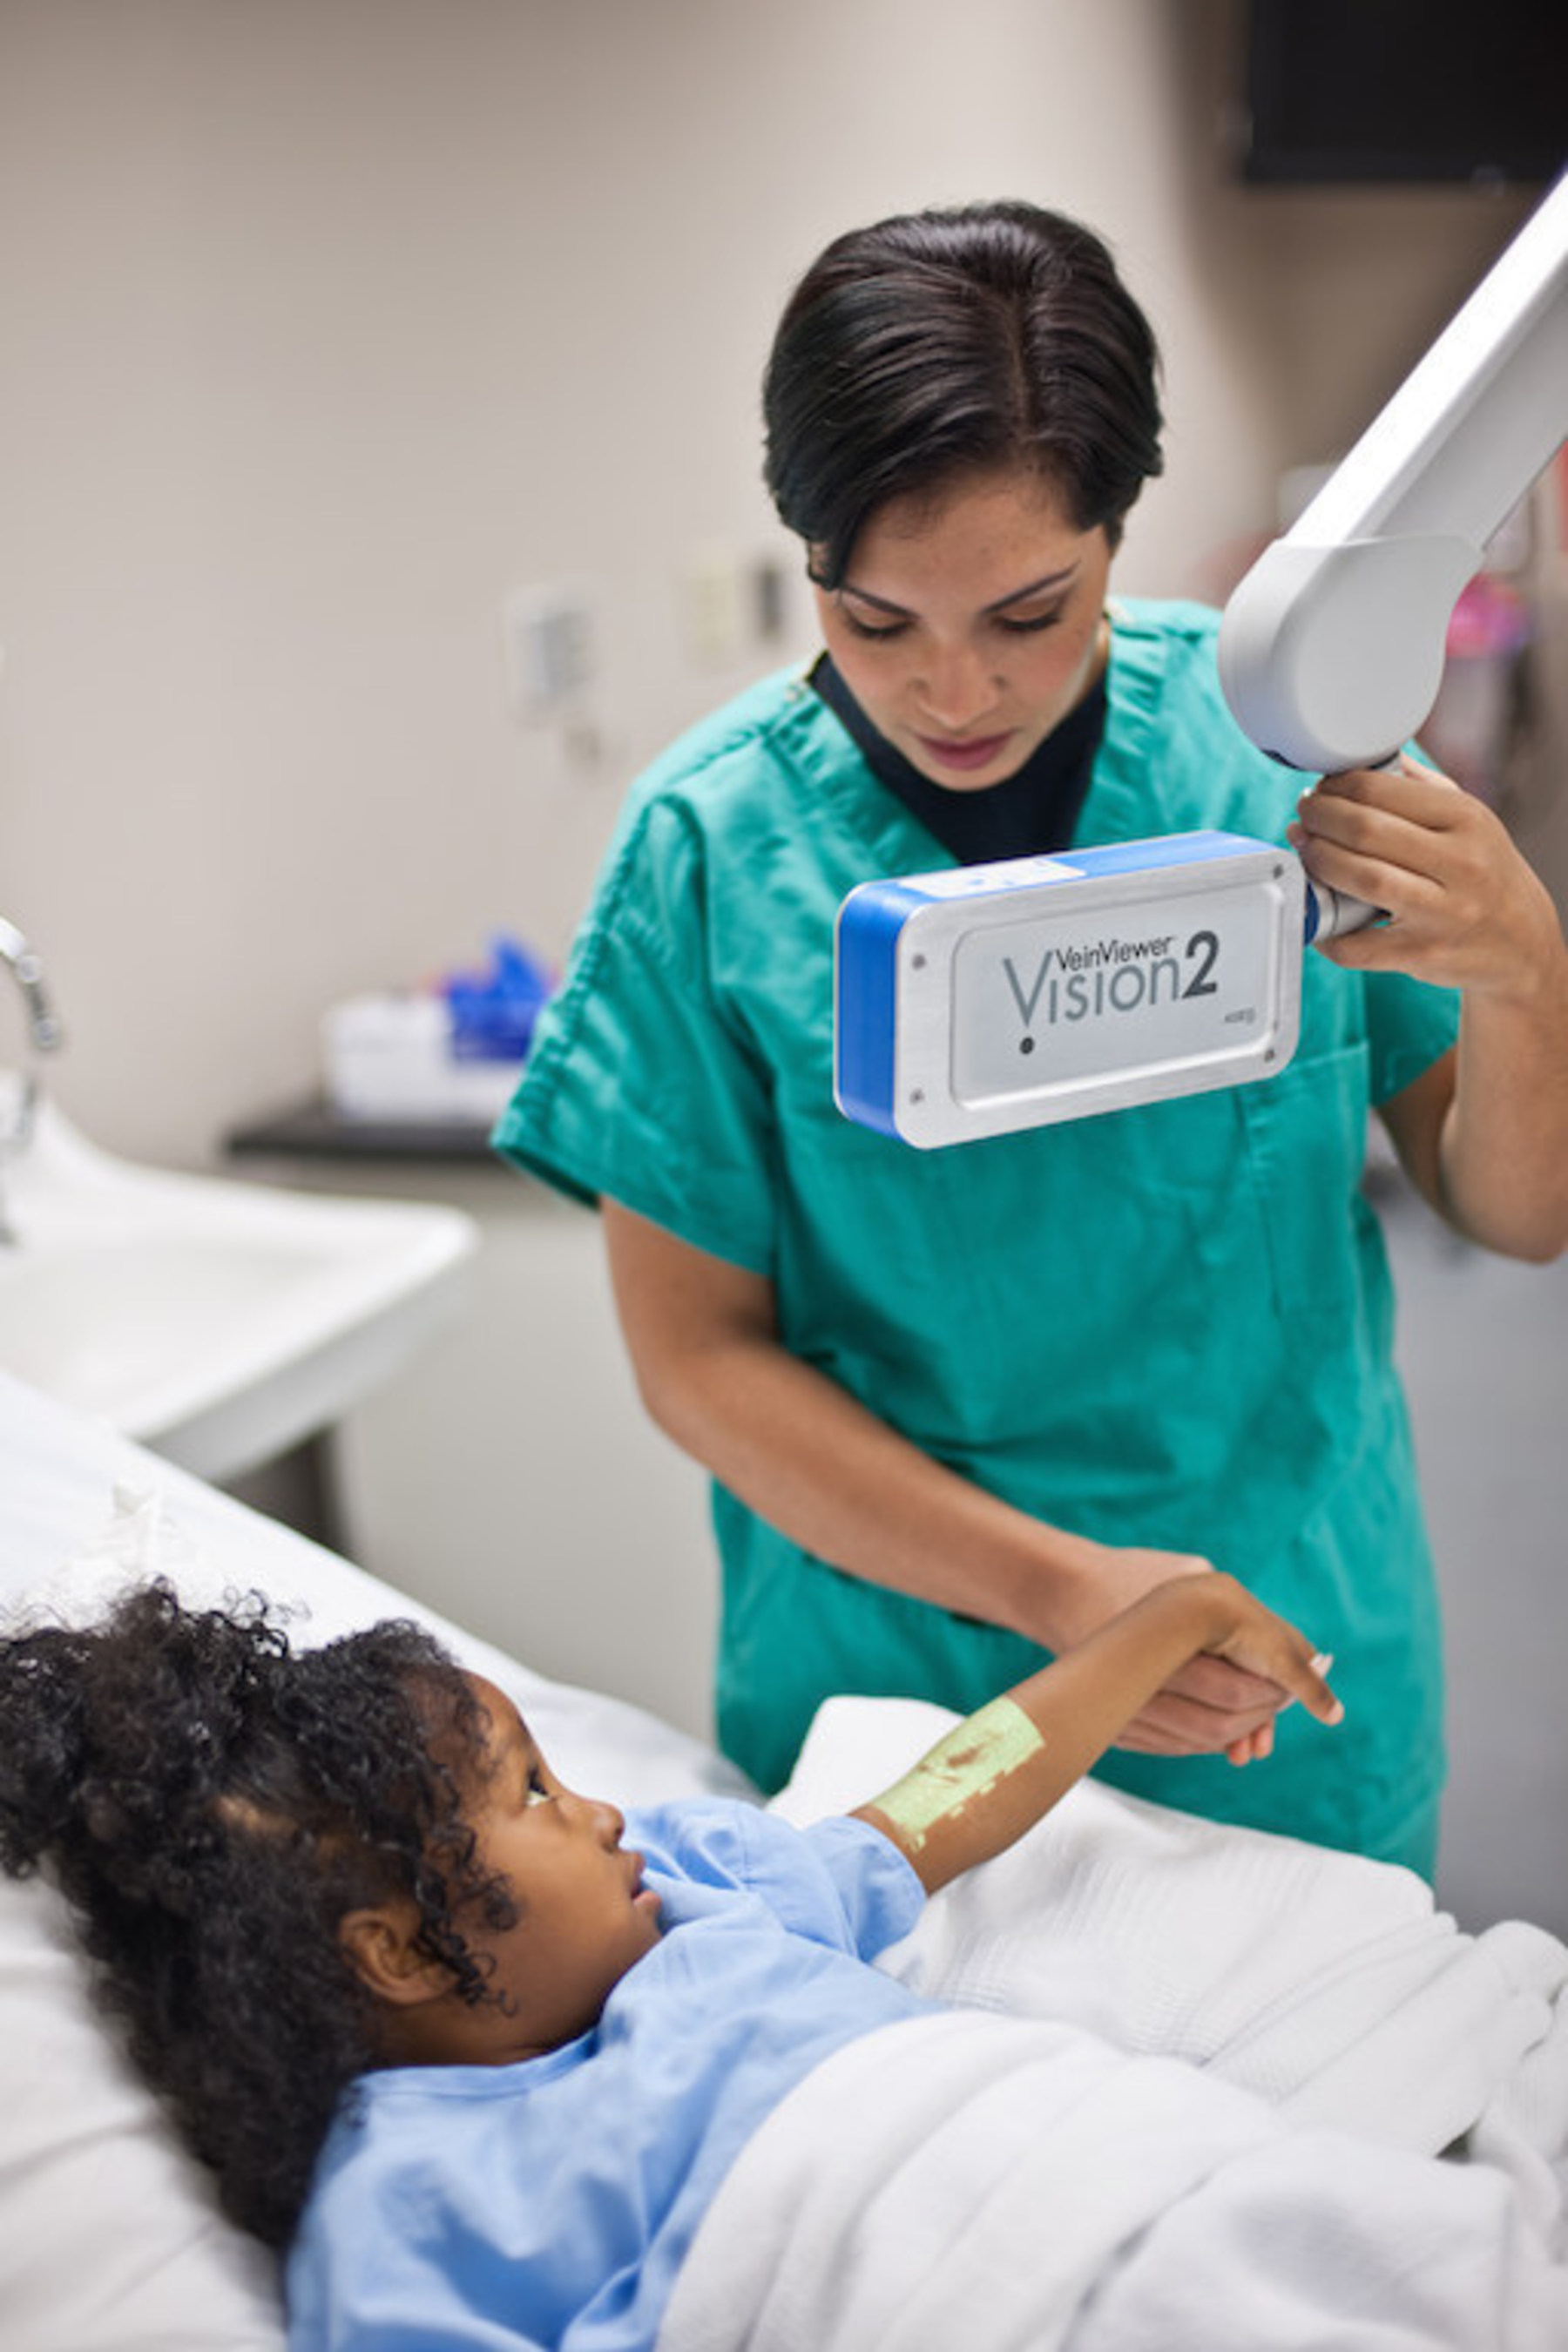 A nurse treats a pediatric patient using vein illumination technology VeinViewer Vision2 (PRNewsFoto/Christie Medical Holdings, Inc.)